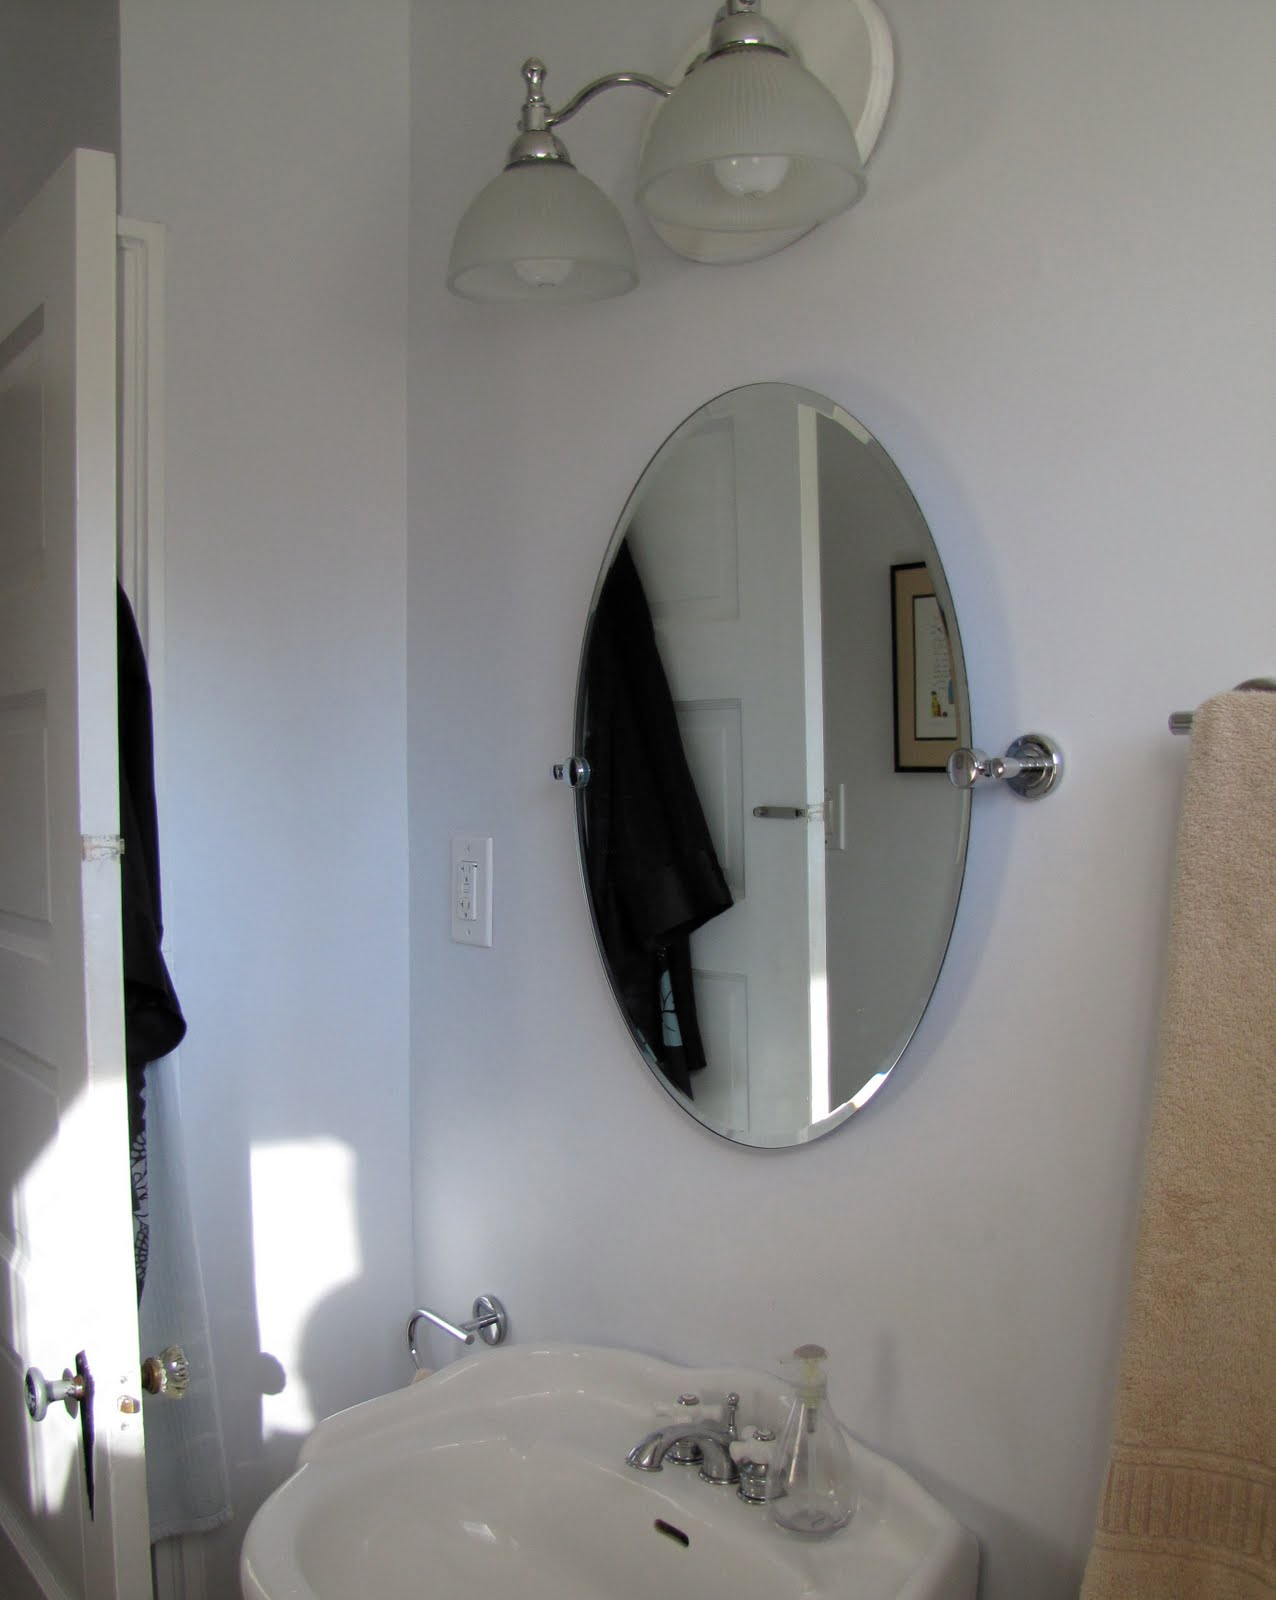 Modern bathroom mirrors - Our Mid Century Modern Bathroom Mirror